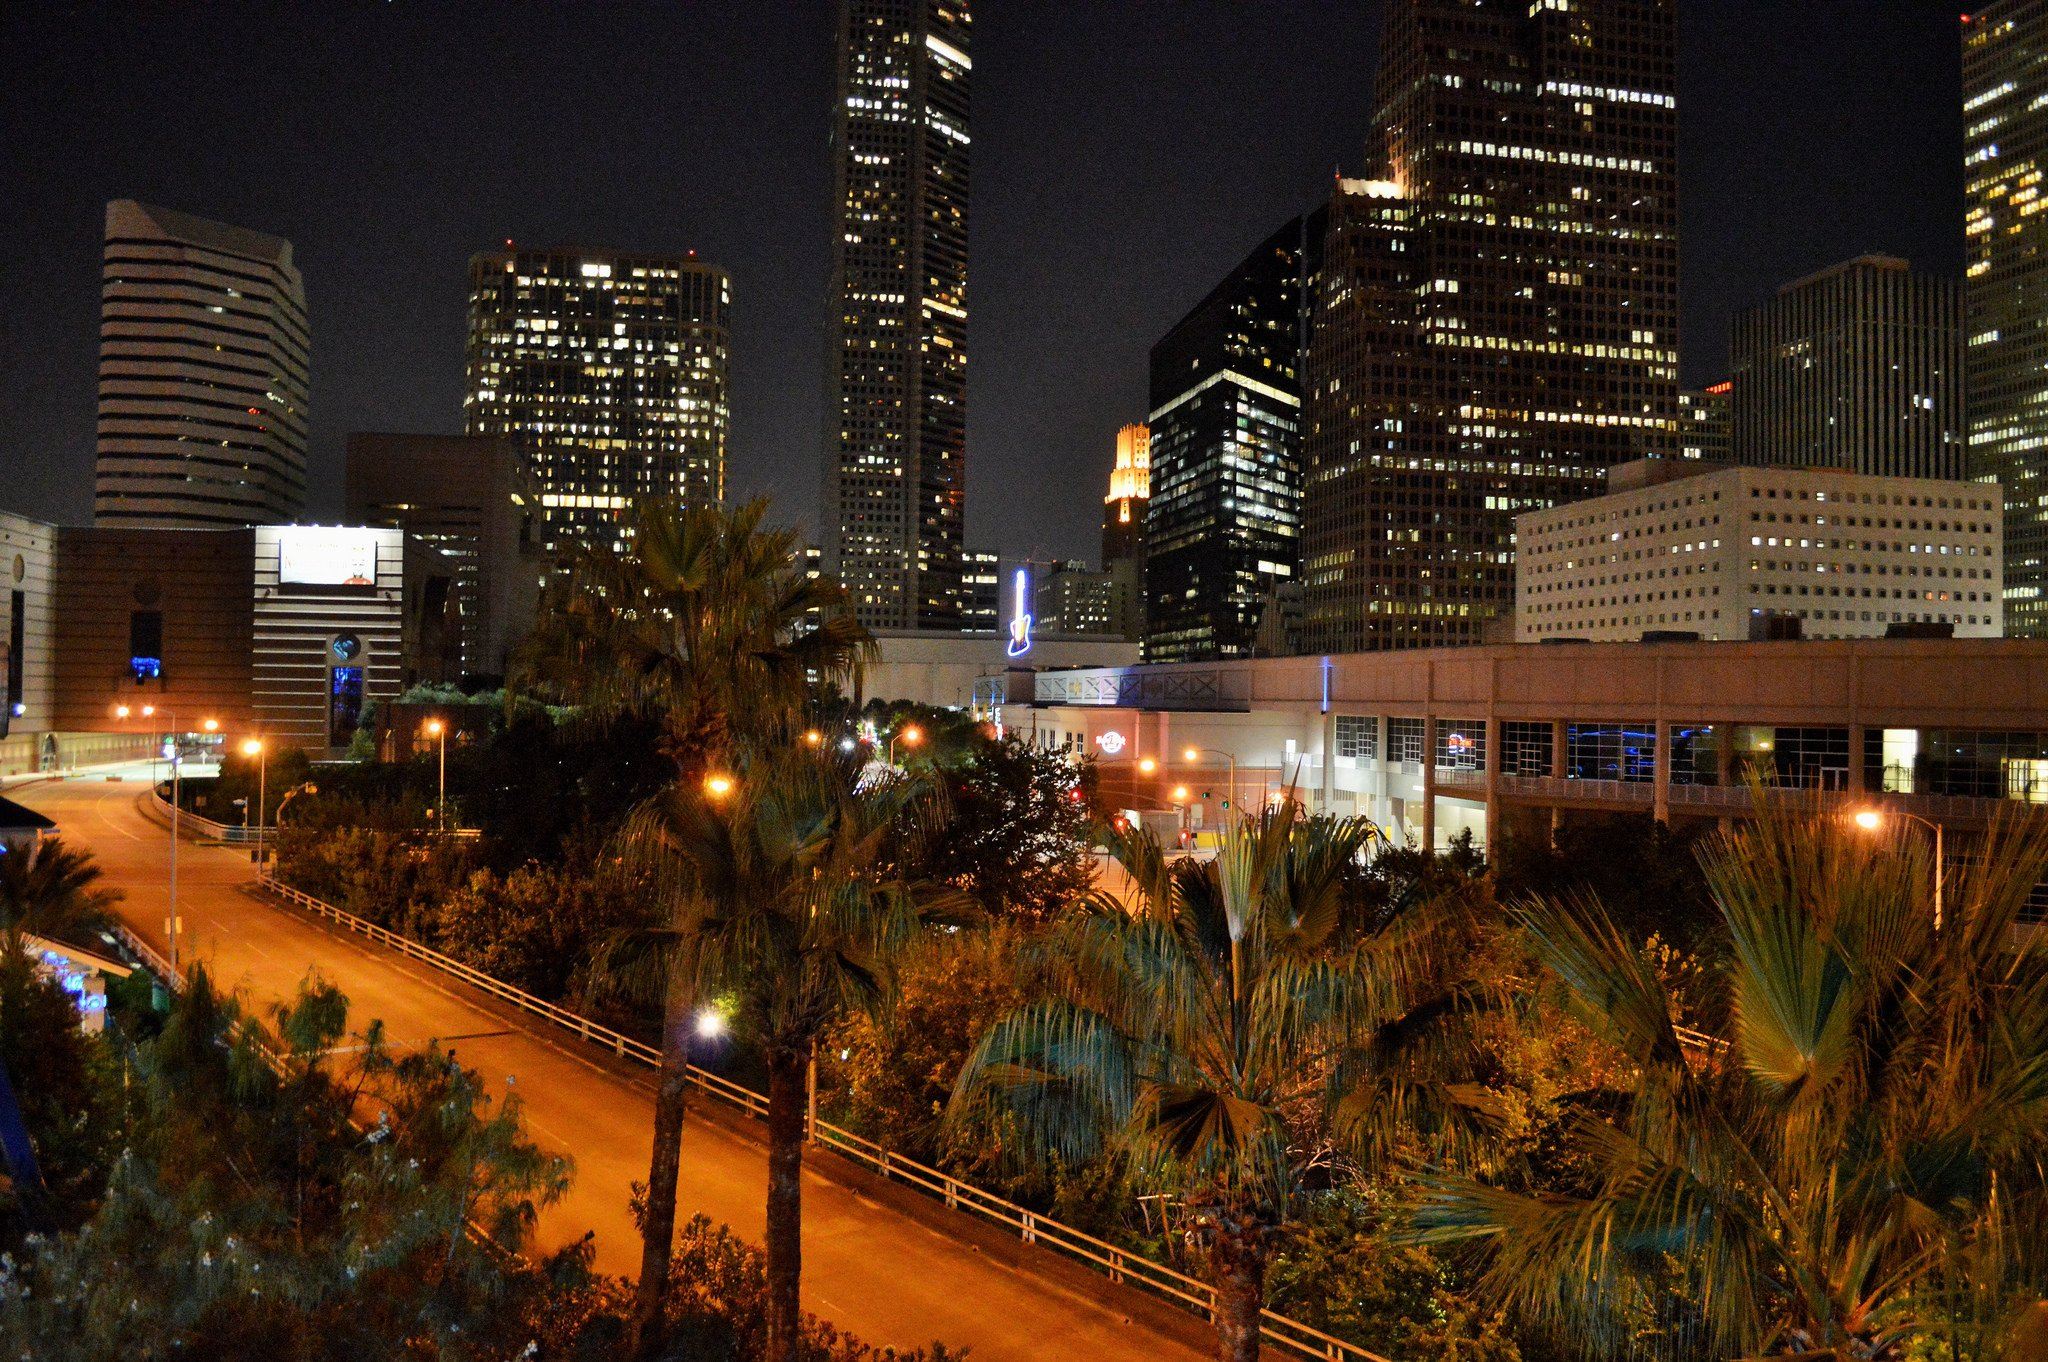 Buildings USA Downtown Offices Storehouses Stores Wallpaper Background 2048x1362